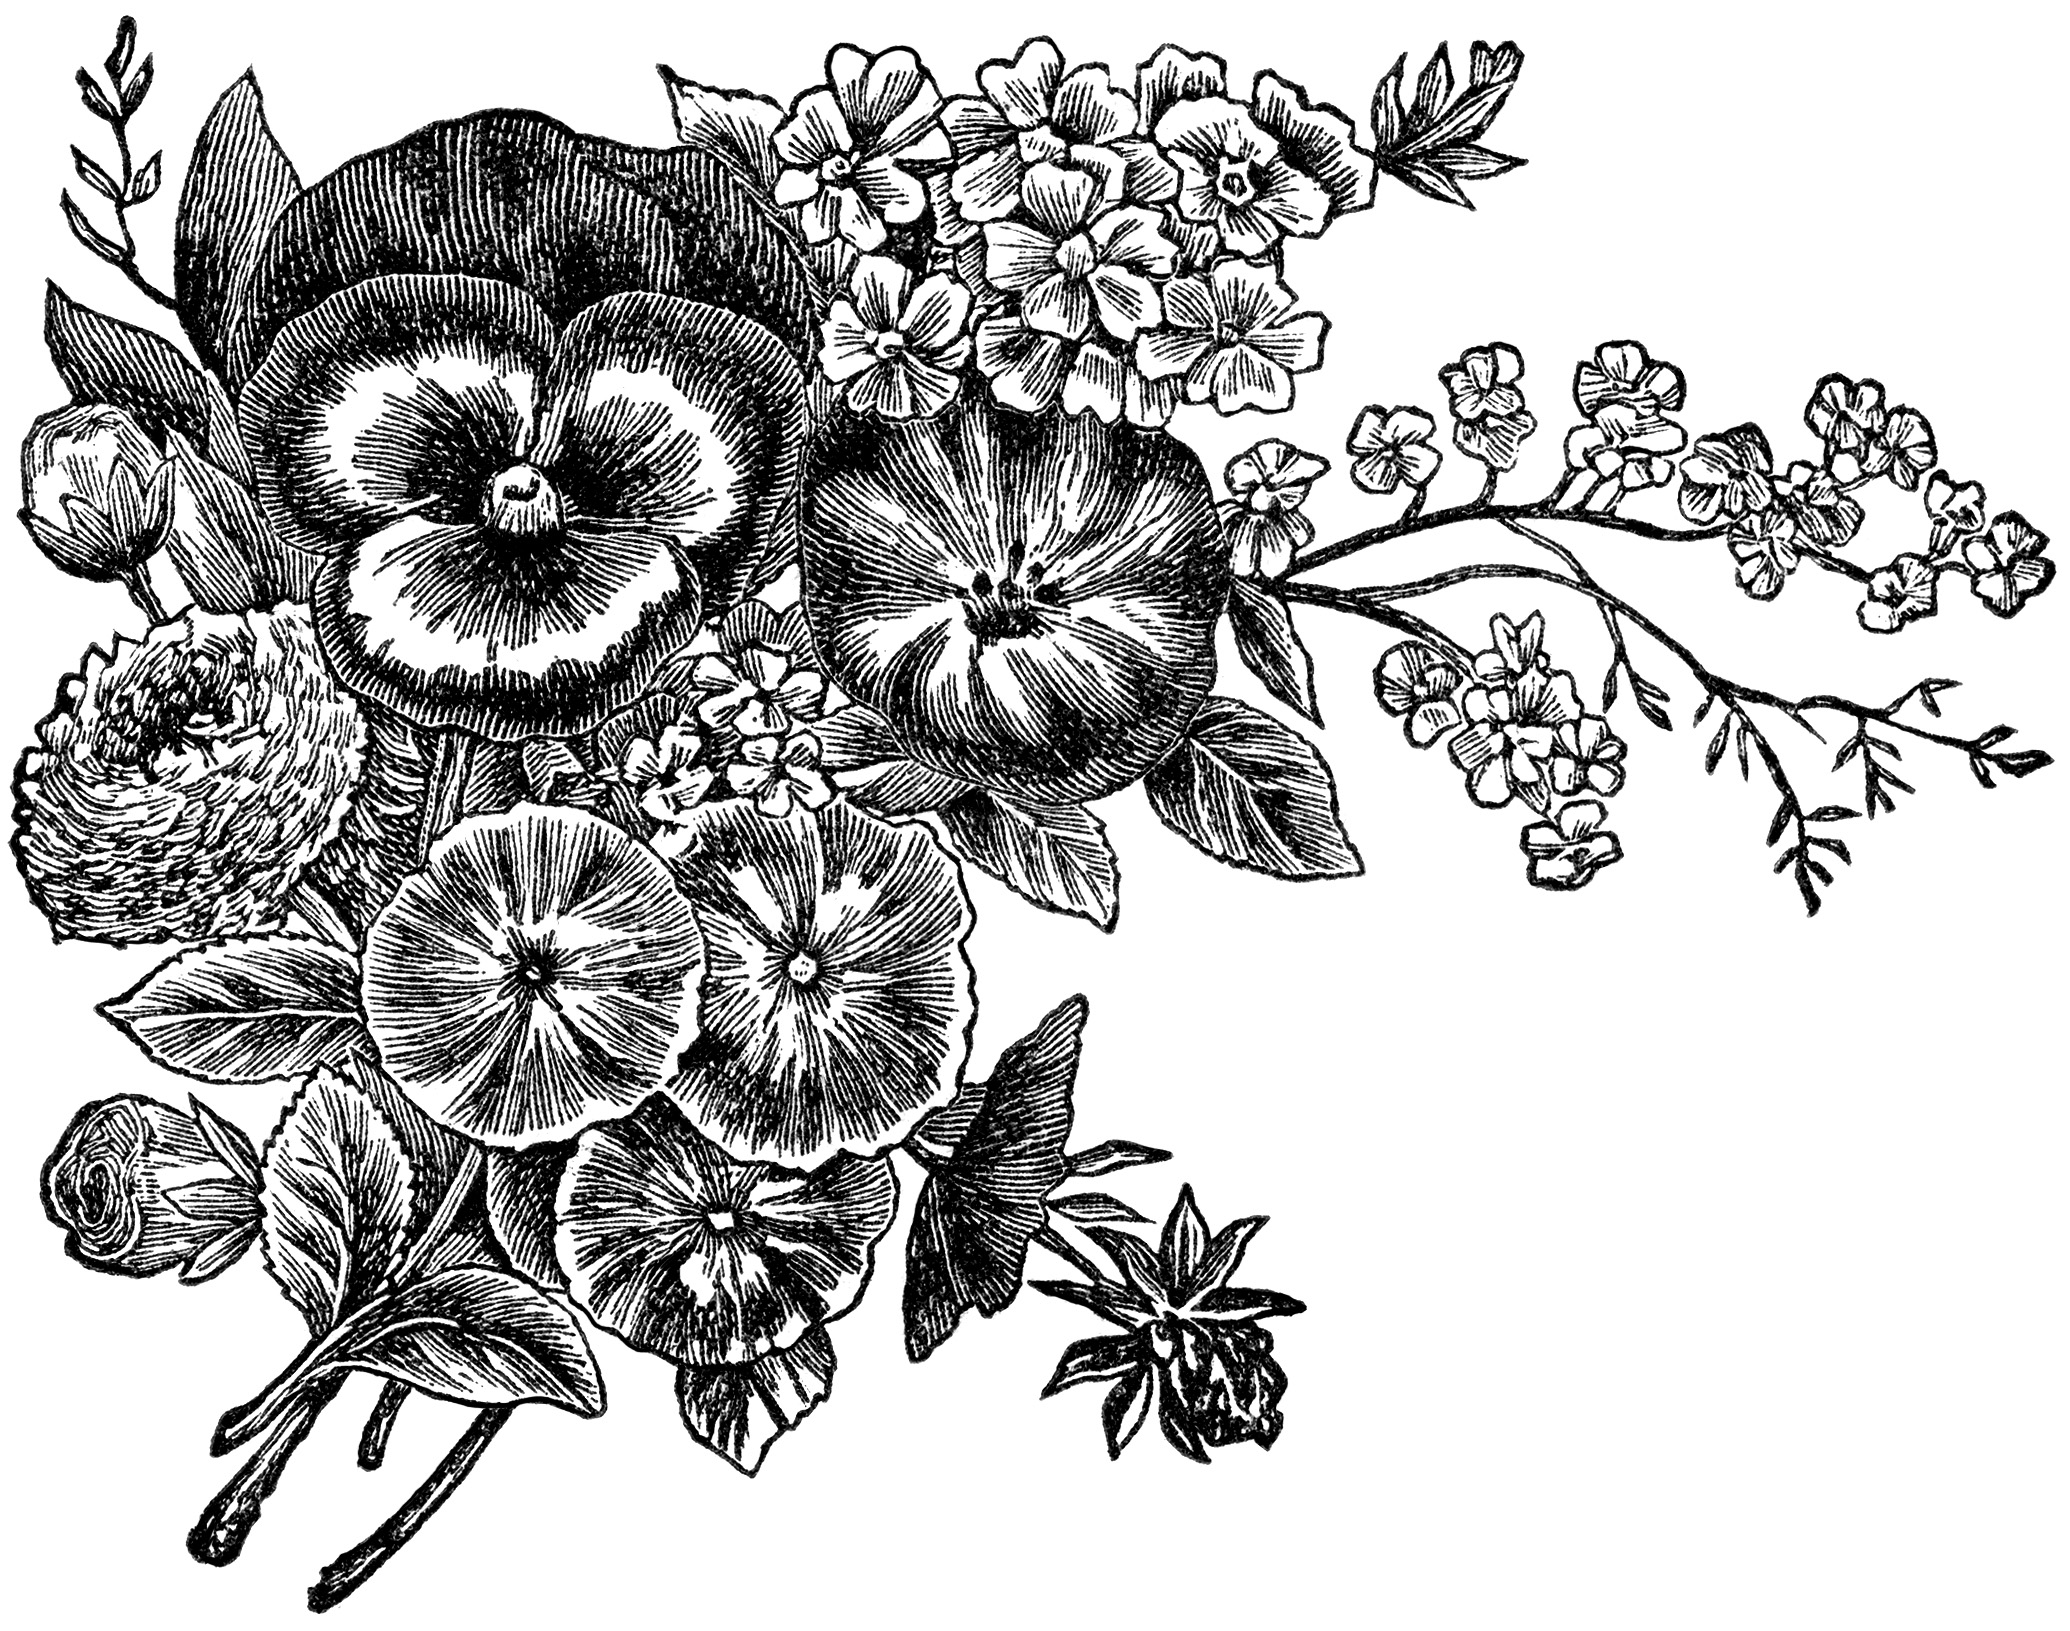 Free black and white floral clip art banner royalty free Free black and white floral clip art - ClipartFest banner royalty free